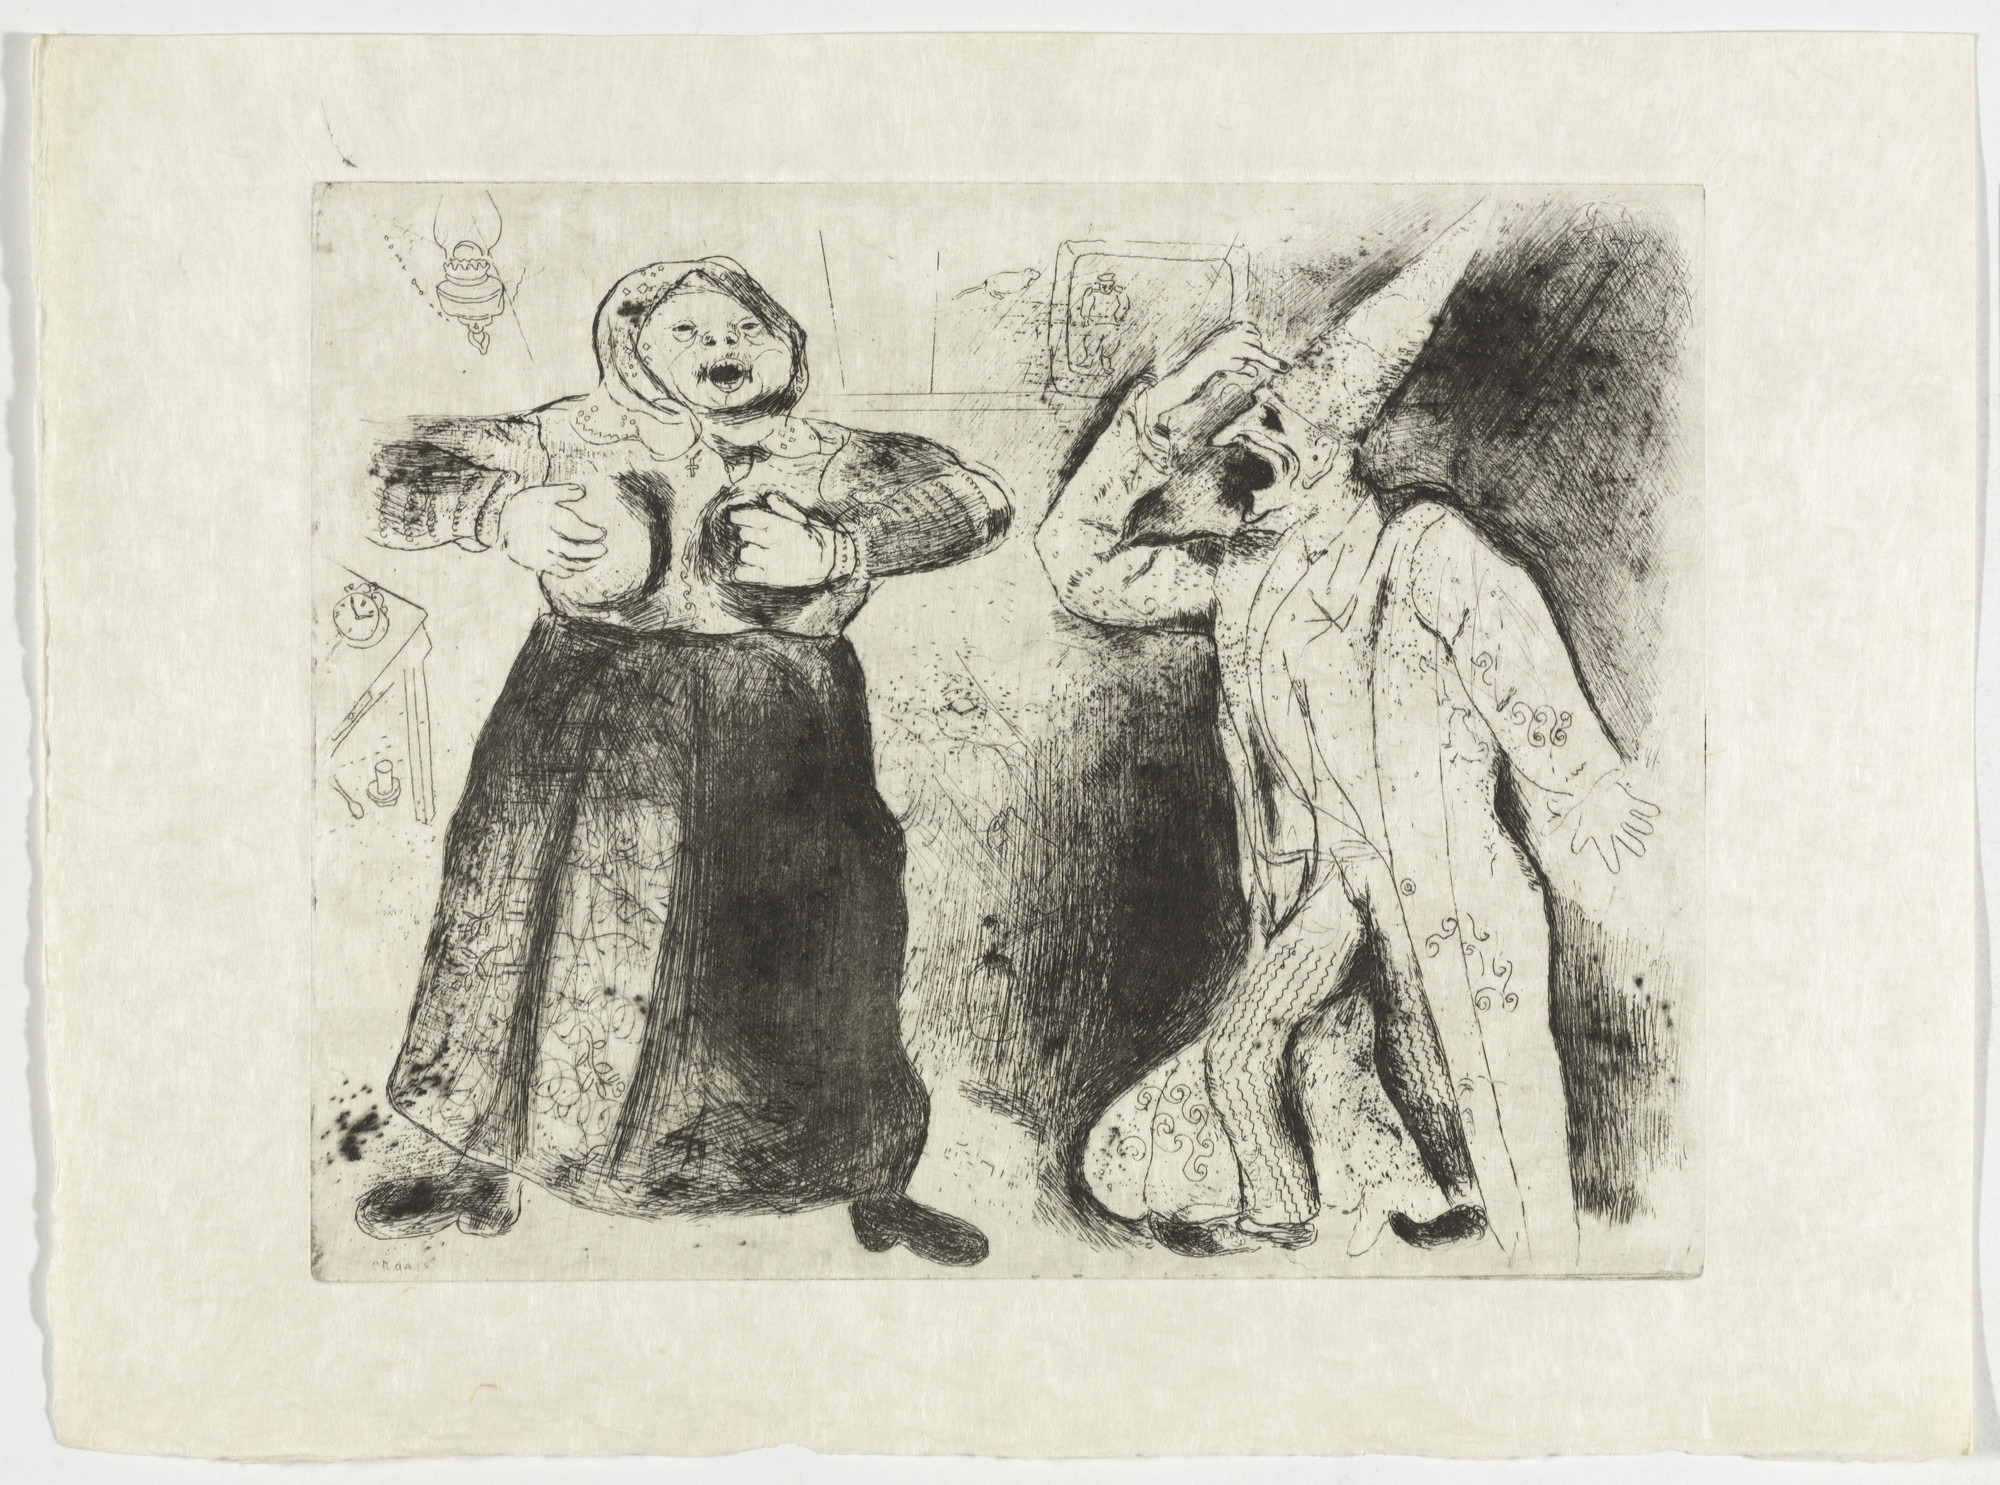 Marc Chagall. Dispute Between Pliouchkine and Mavra (Dispute de Pliouchkine et de Mavra), plate XLVI (supplementary suite) from Les Âmes mortes. 1923-48